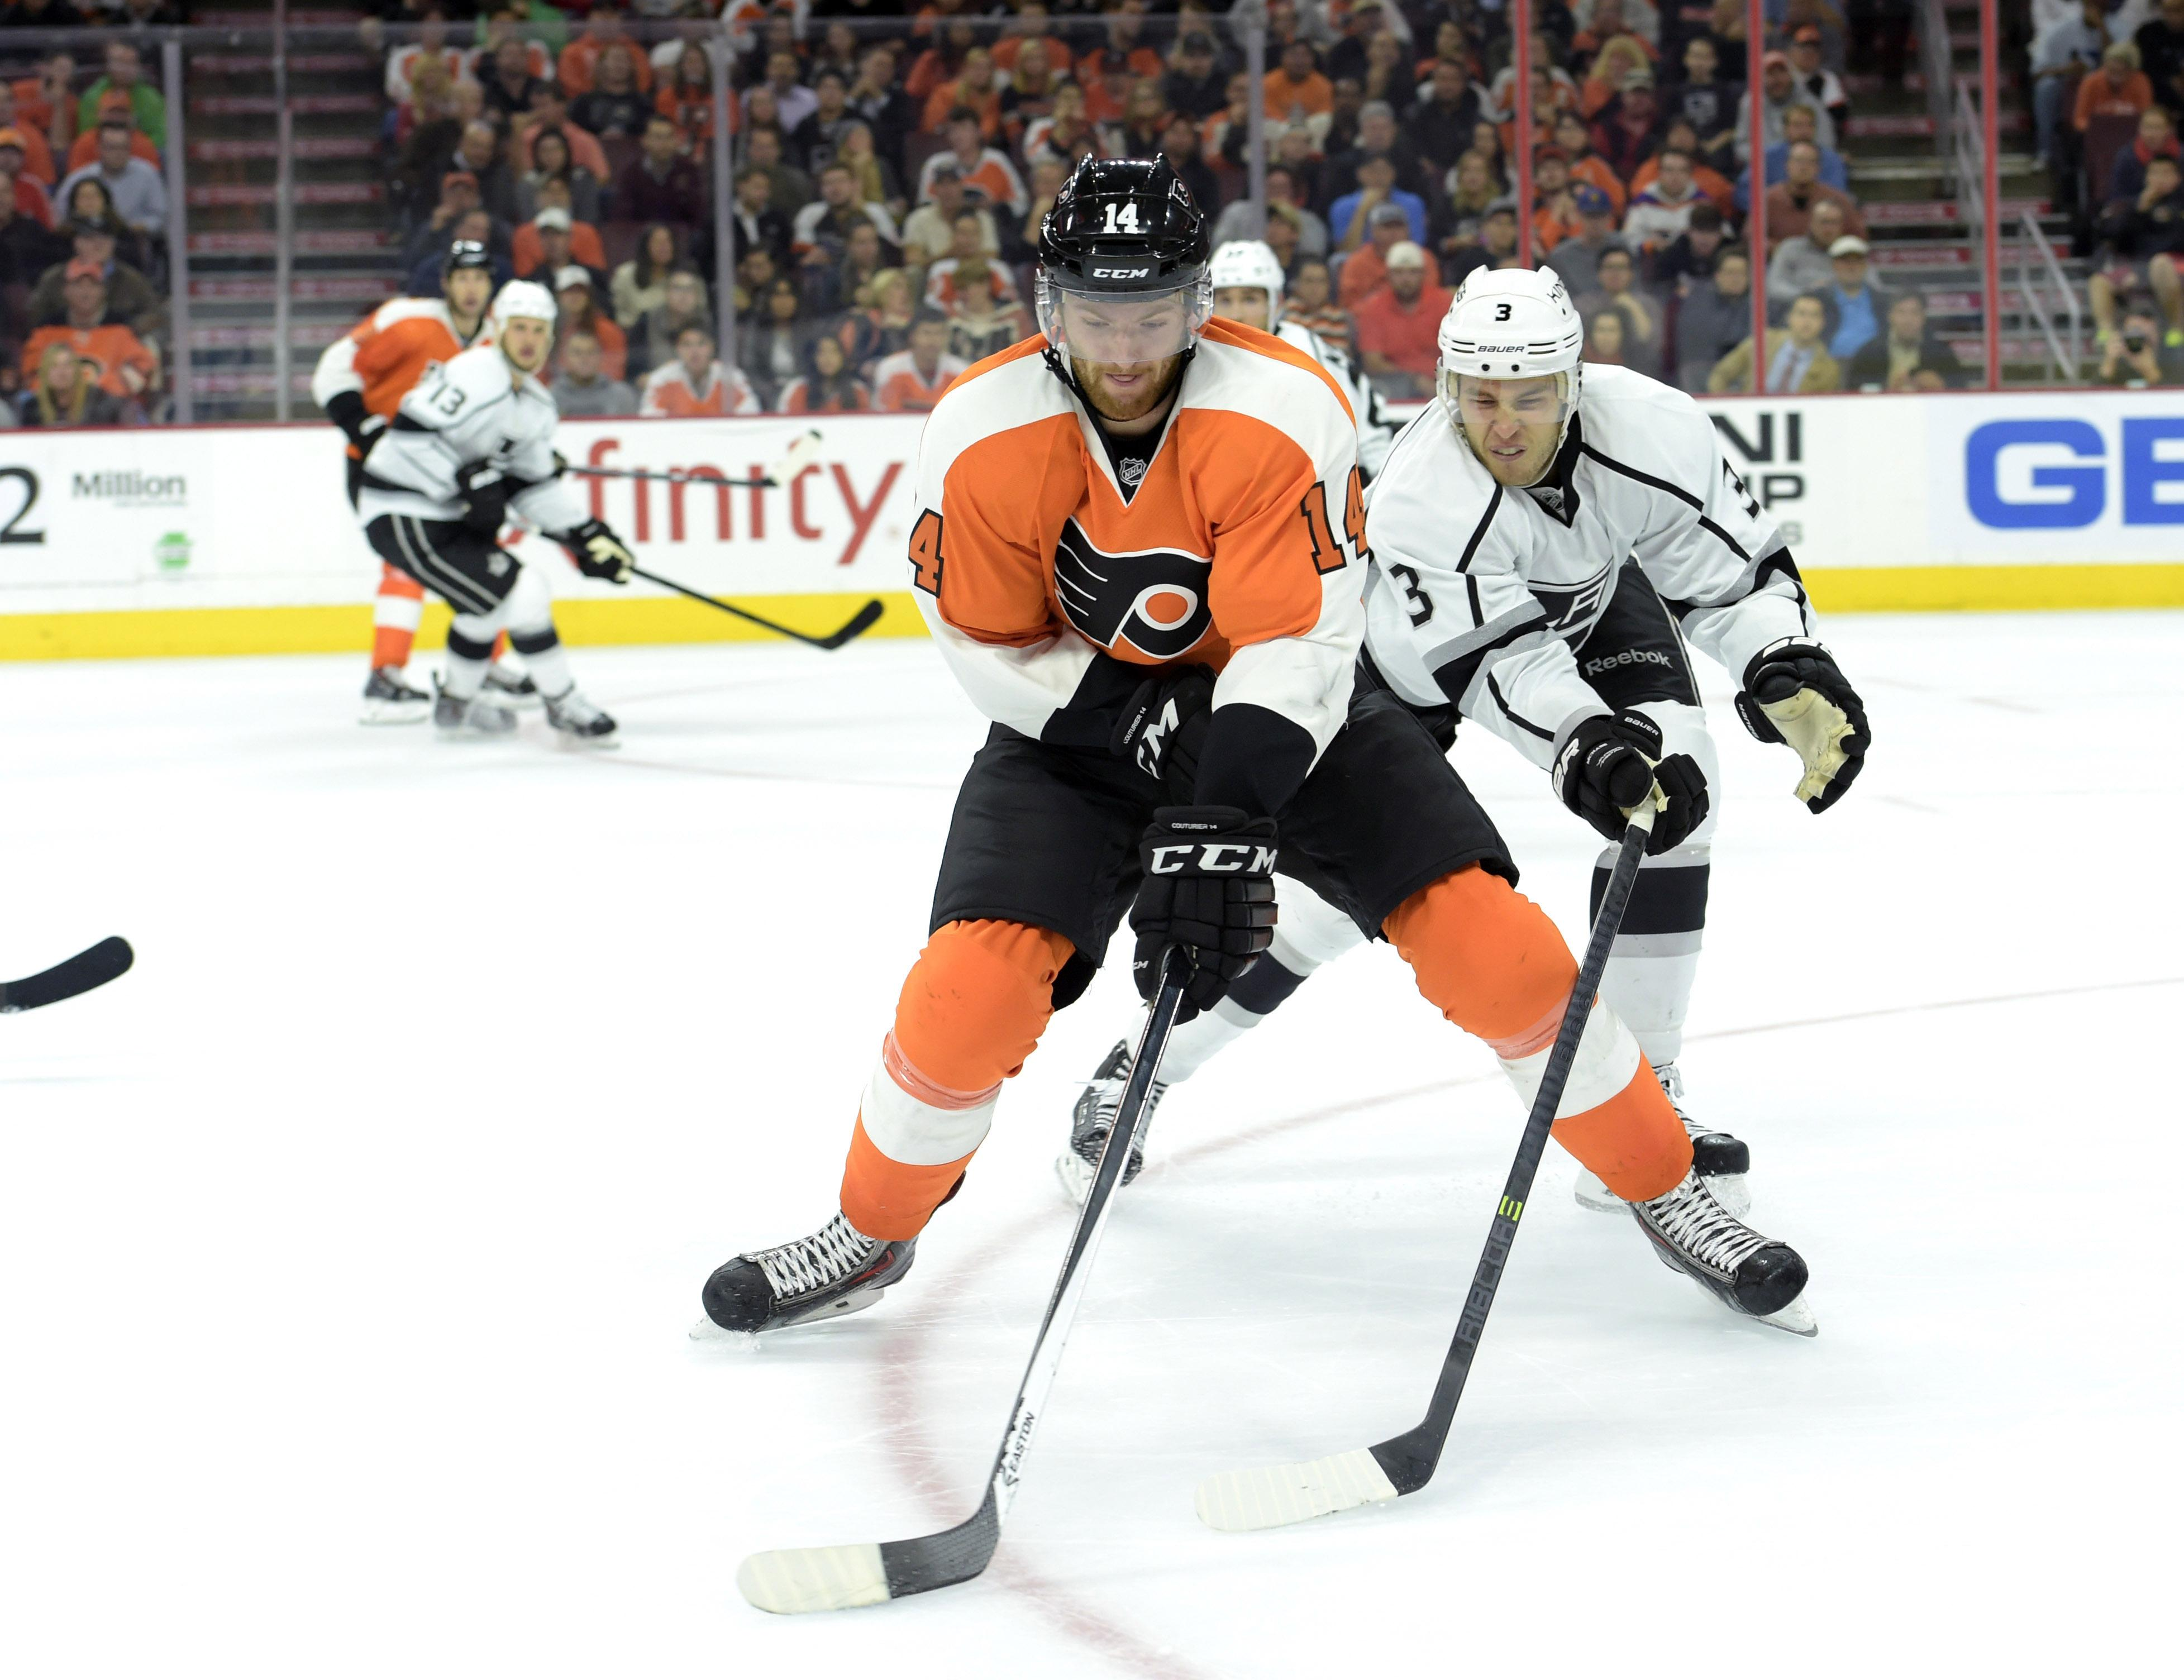 Laughton scores twice, leads streaking Flyers over Jets